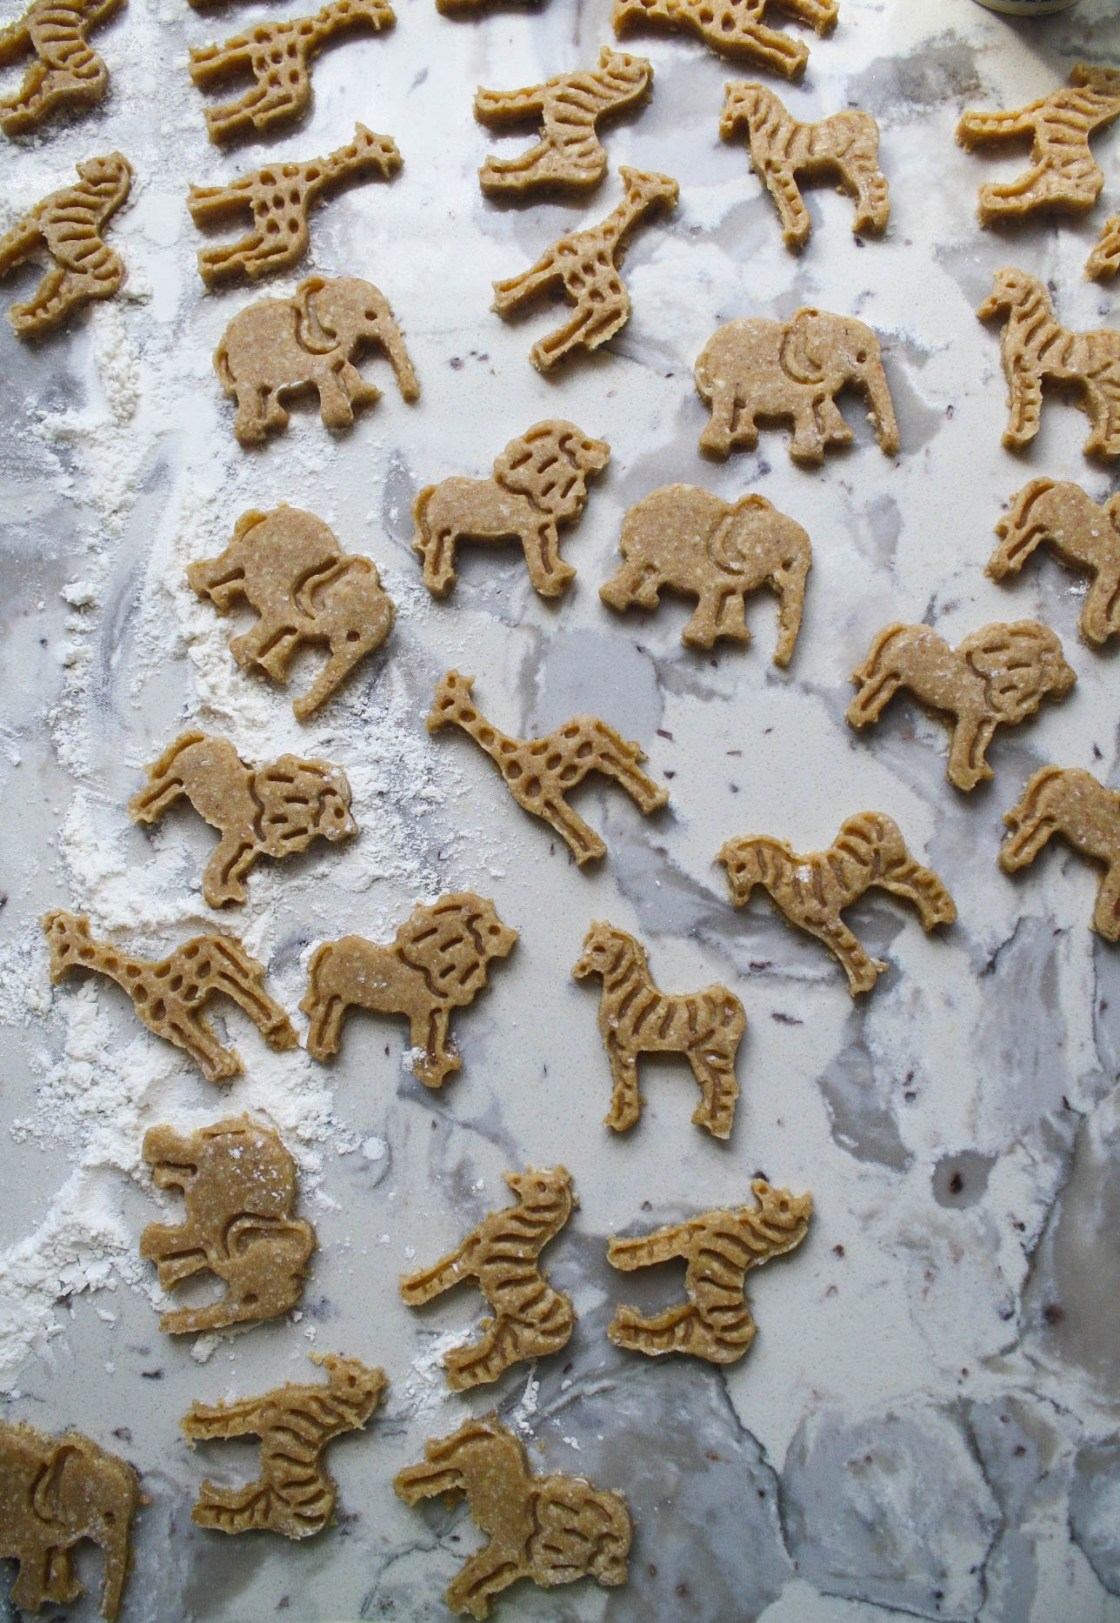 Whole Grain Animal Cracker Cookies | Zestful Kitchen